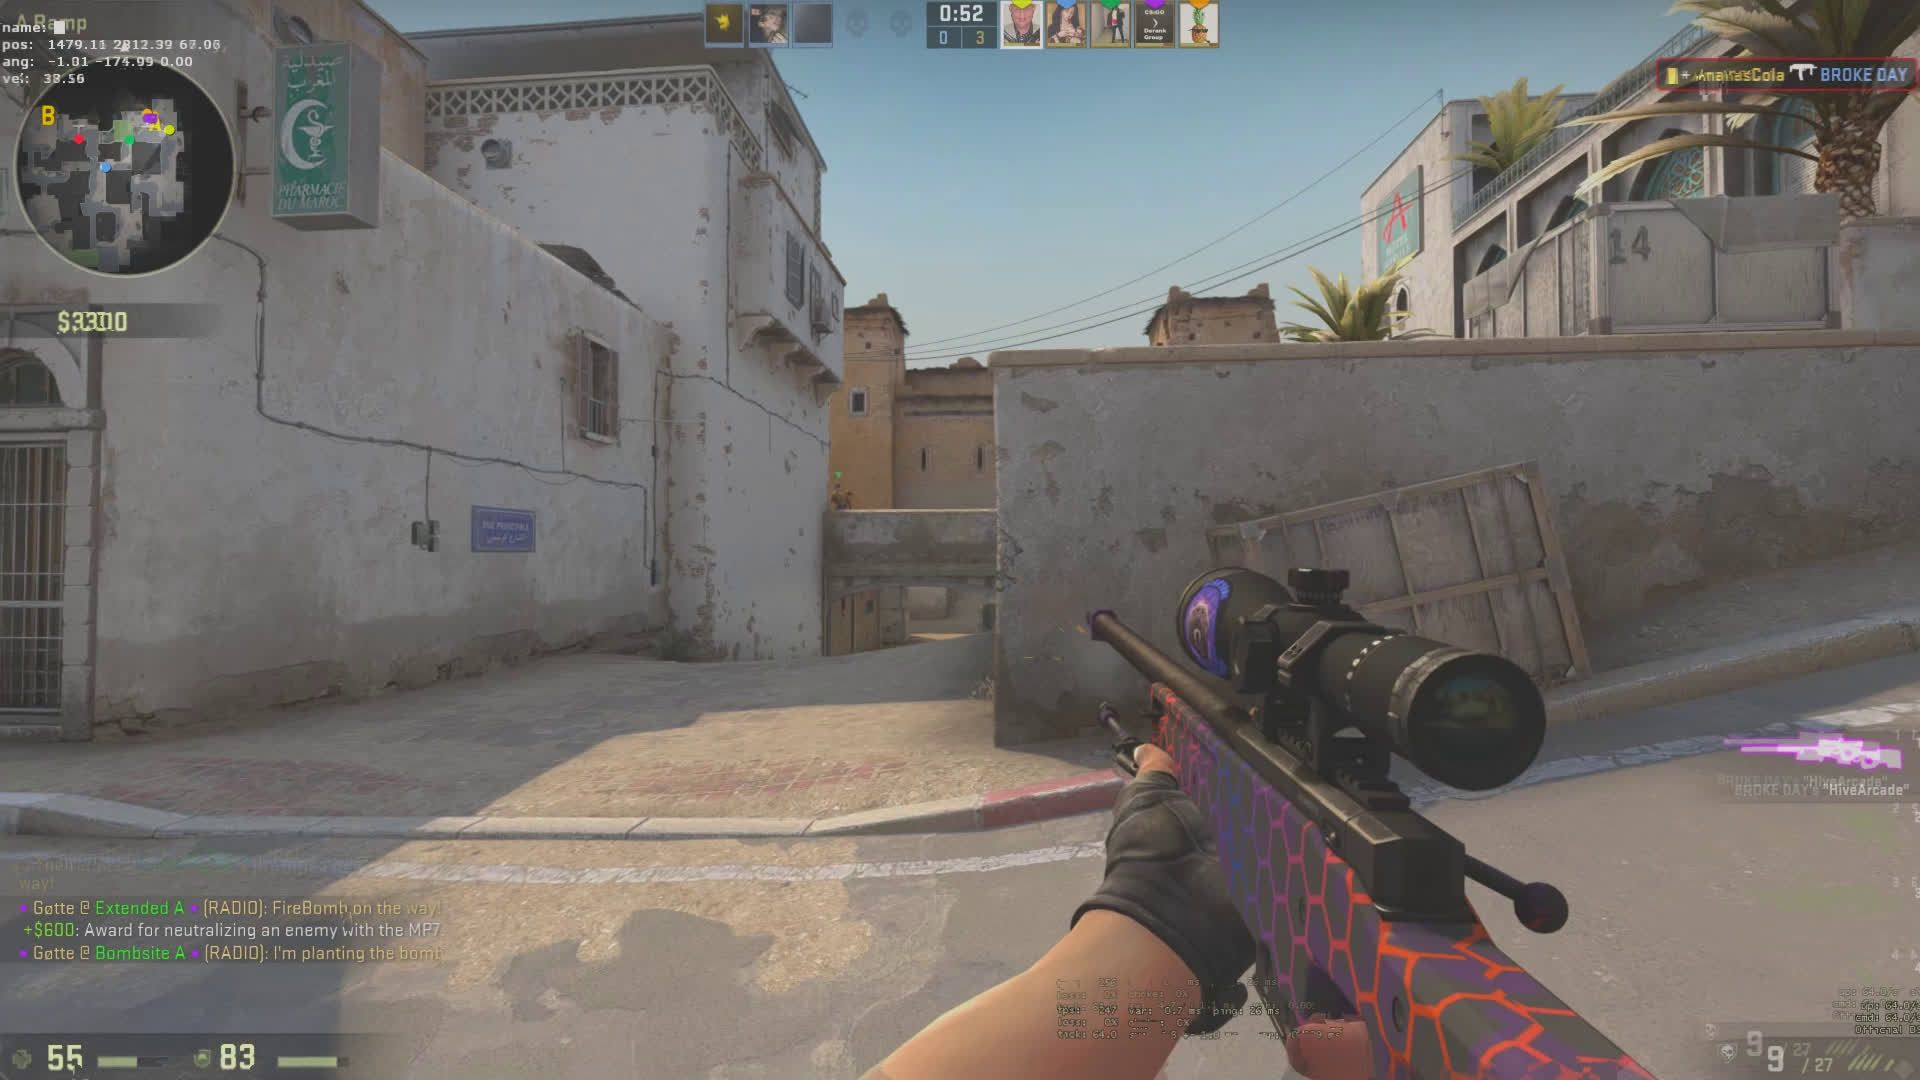 this is why we love csgo Our love, Love, Games